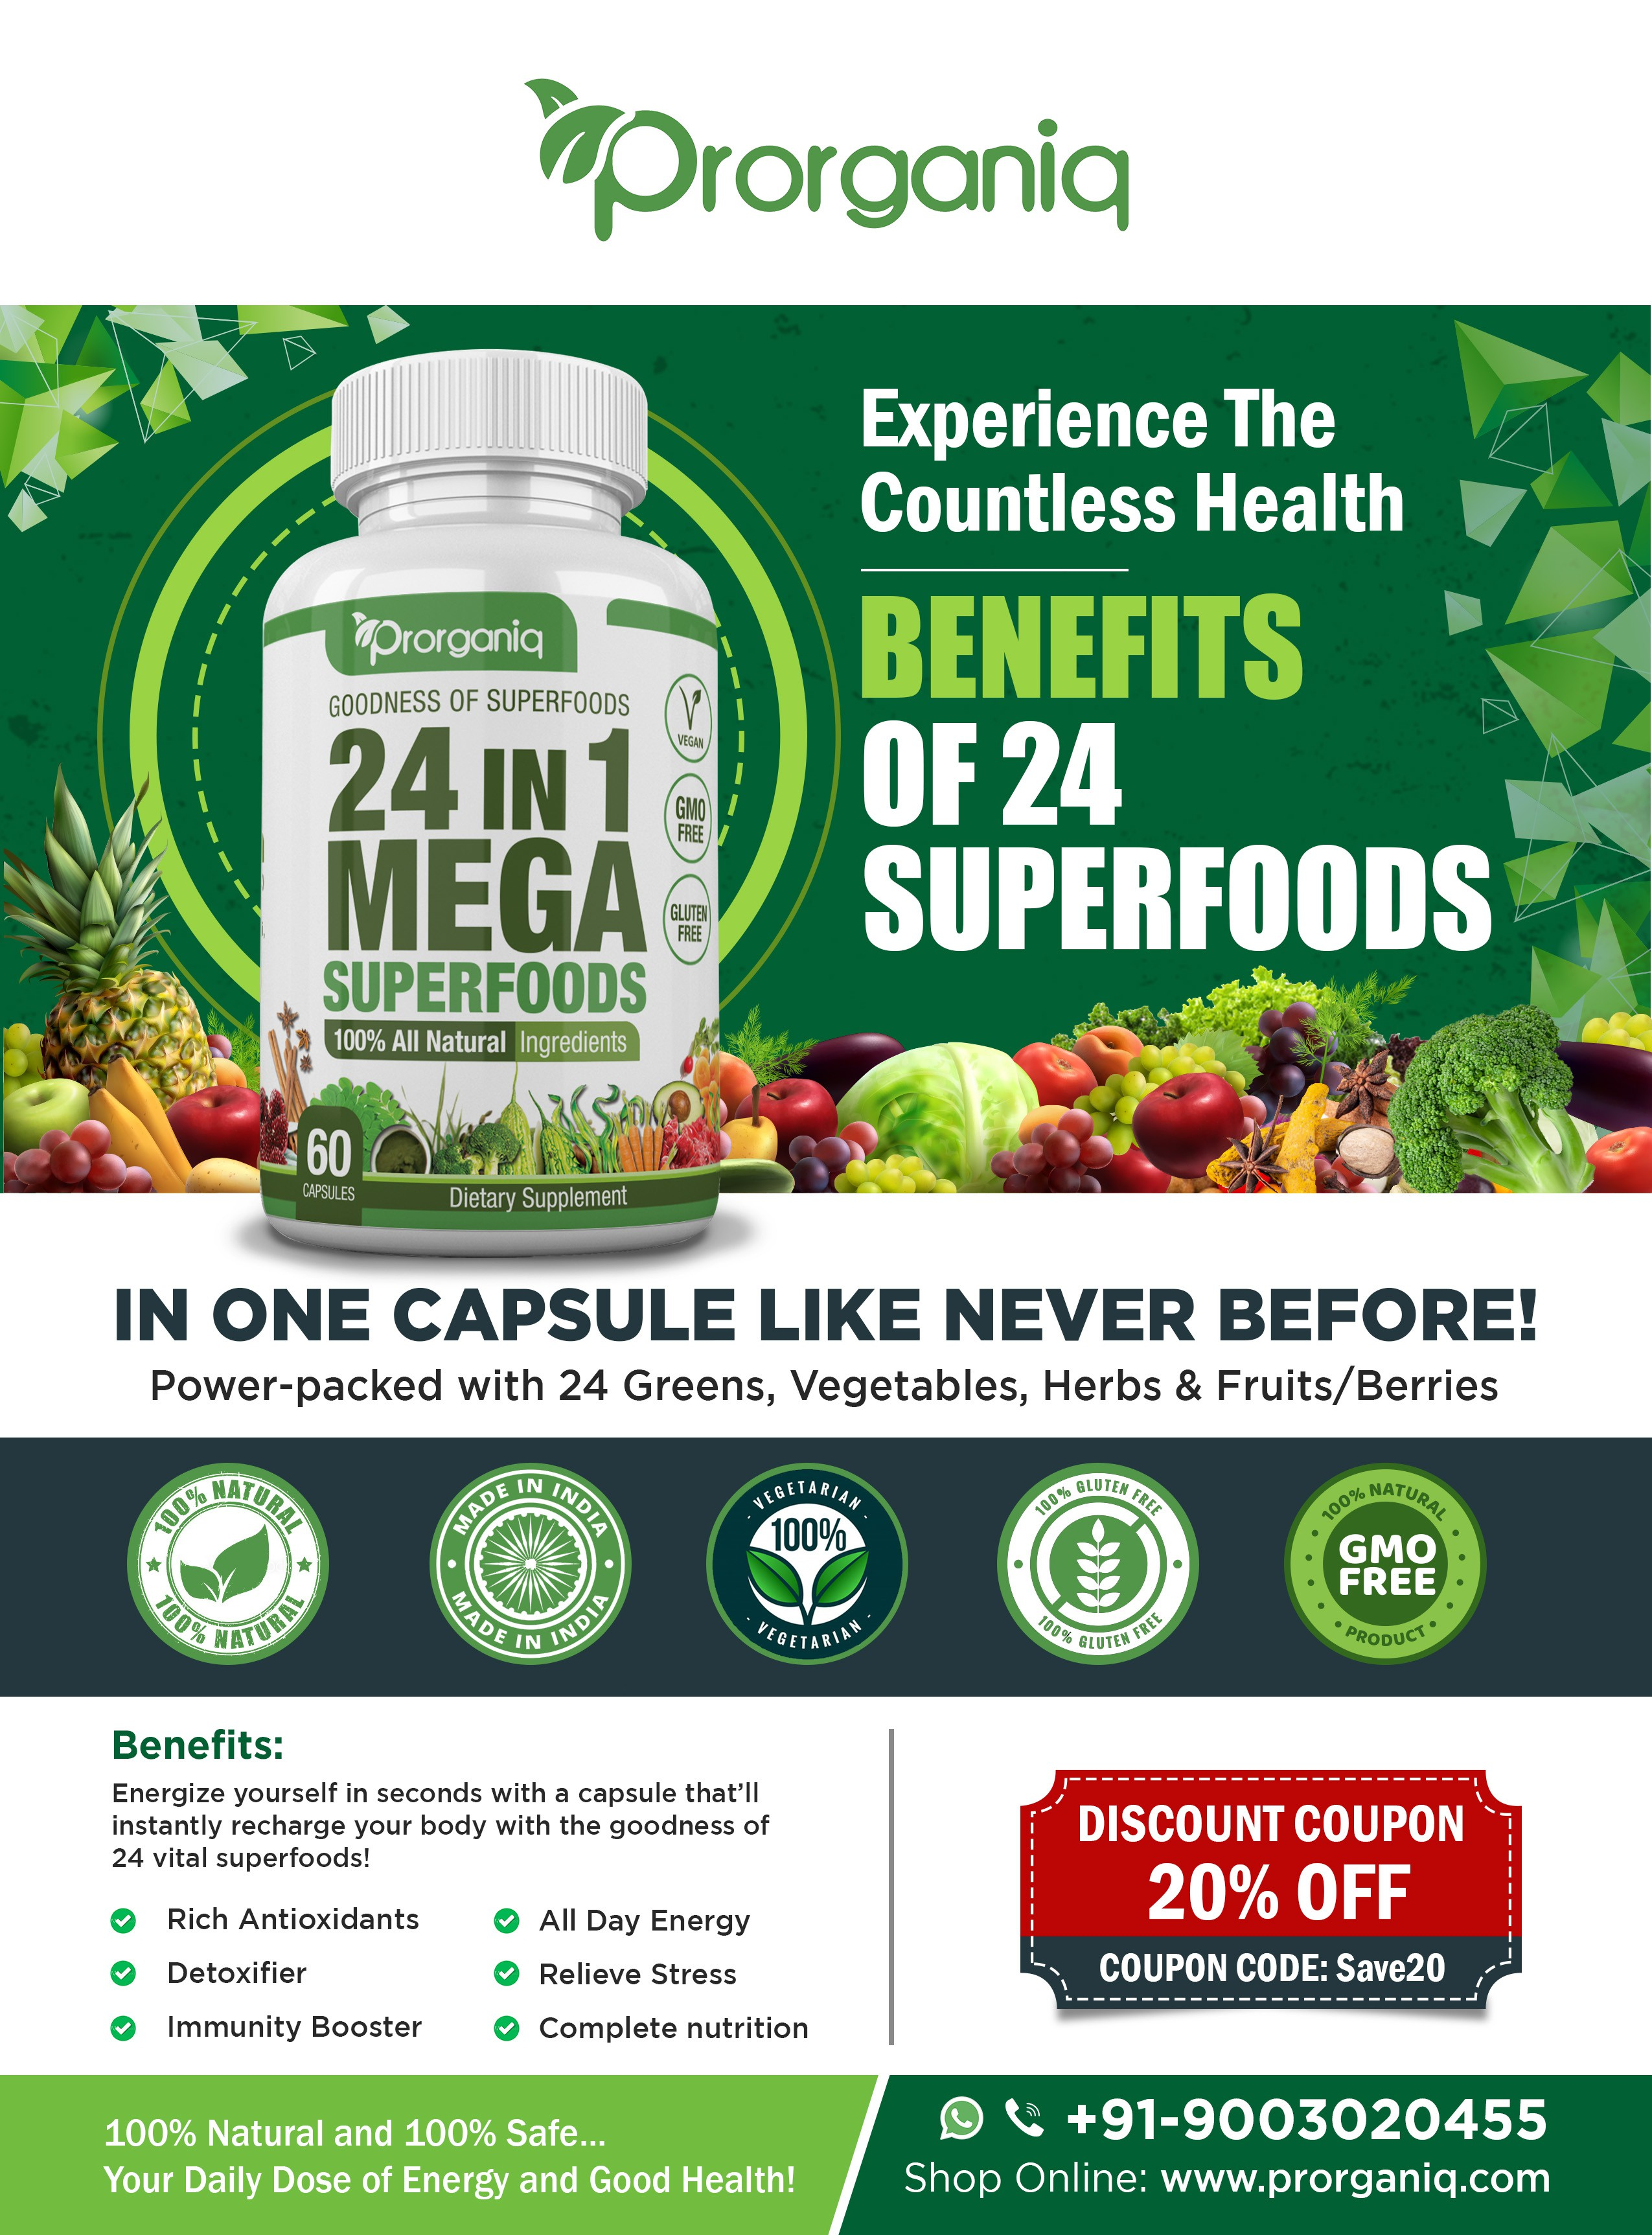 Attractive Flyer Design for a Dietary Supplement Launch